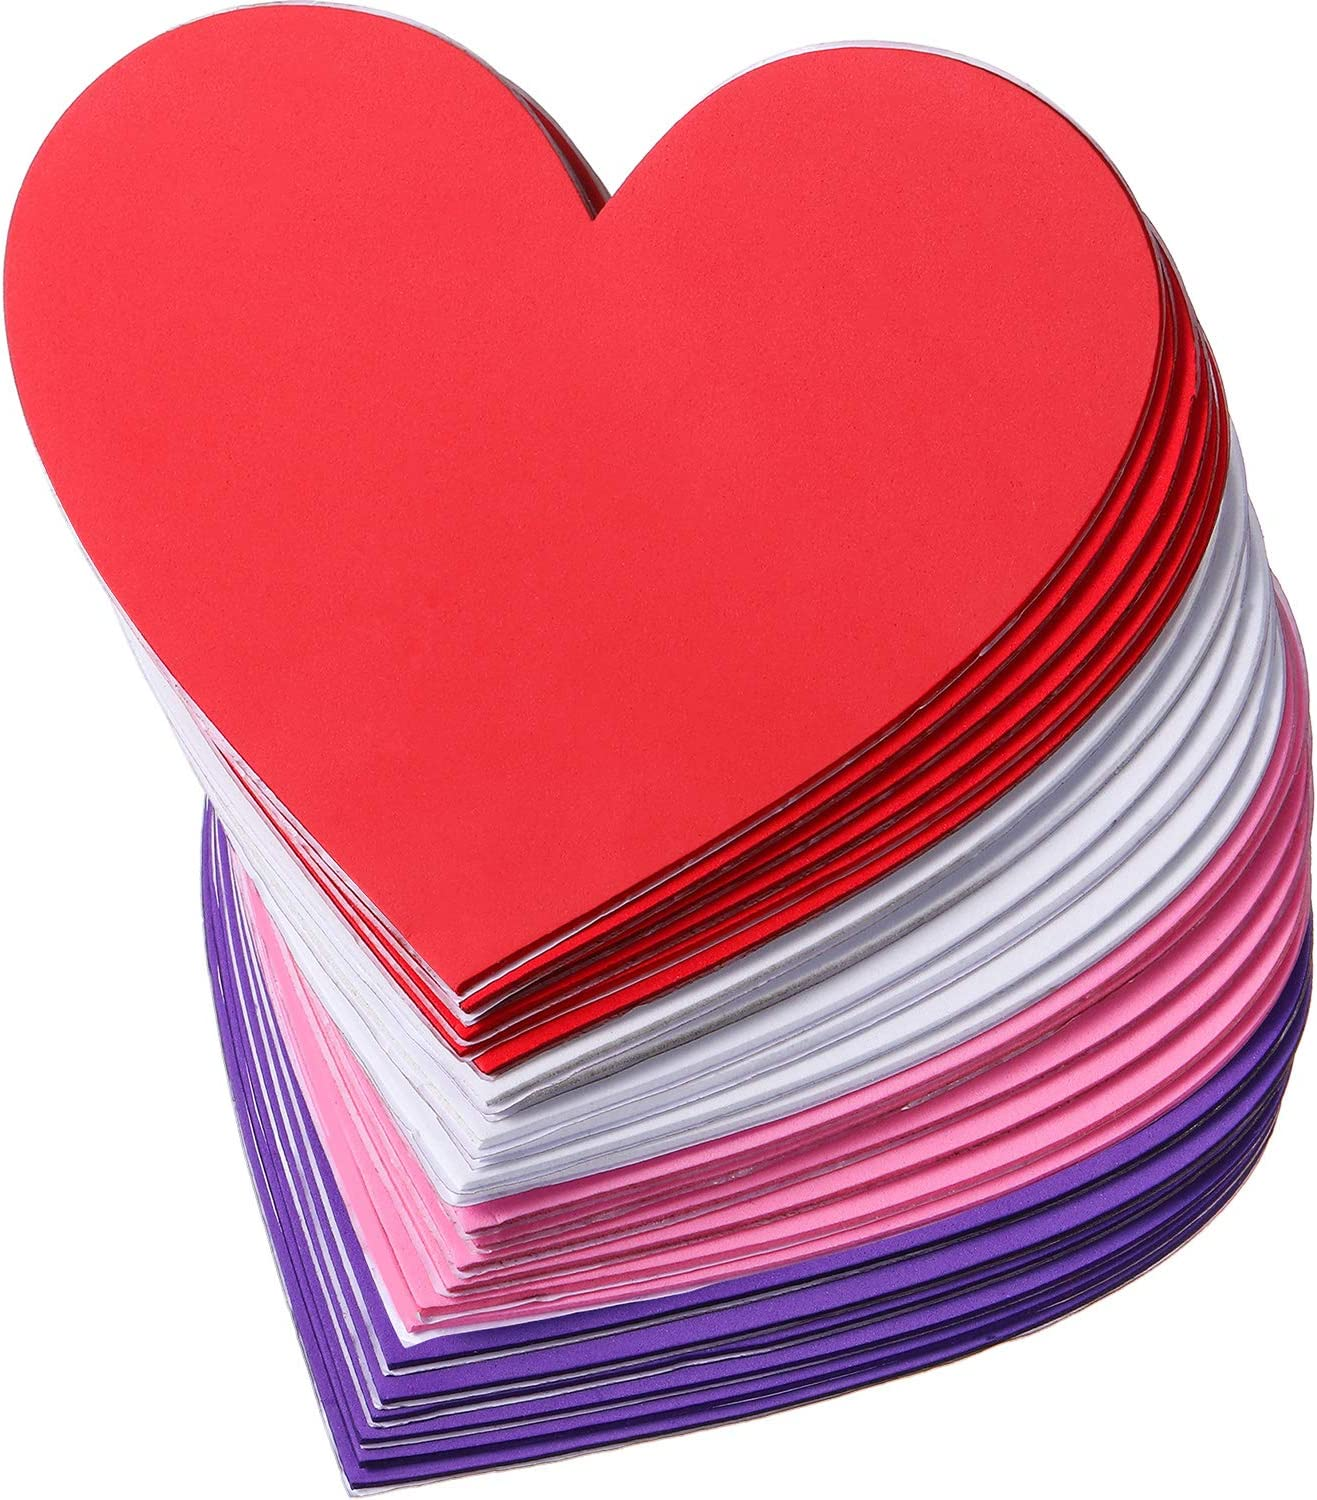 4 Colors 12 Pieces 6 Inches Foam Heart Stickers Festival Decoration Large Heart Shaped Stickers Self Adhesive Hearts Stickers for Valentines Day Mothers Day DIY Crafts Heart Stickers